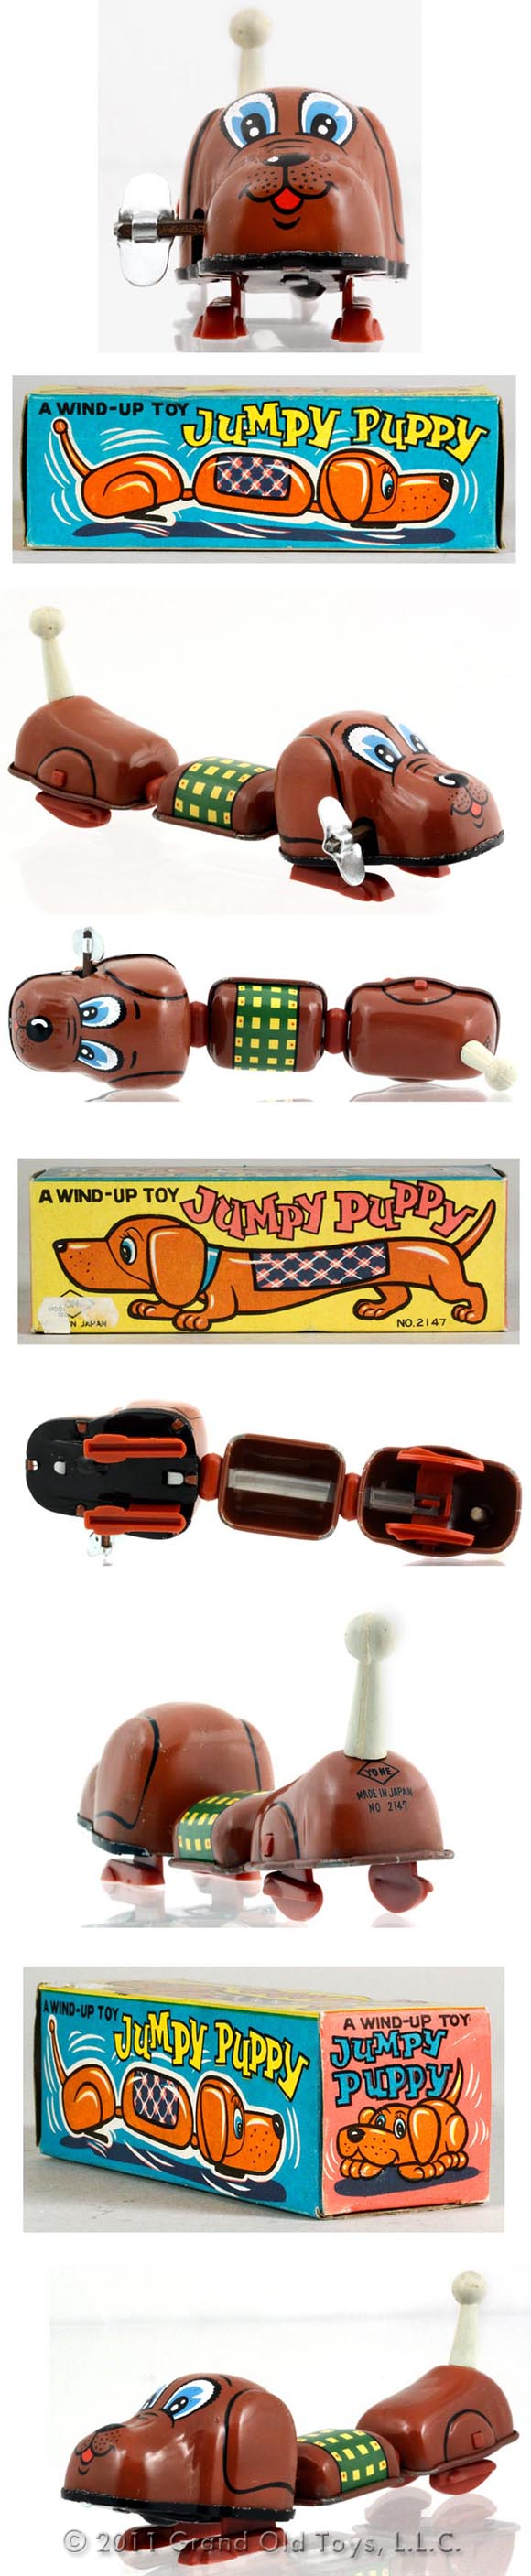 c.1963 Yone Jumpy Puppy In Original Box